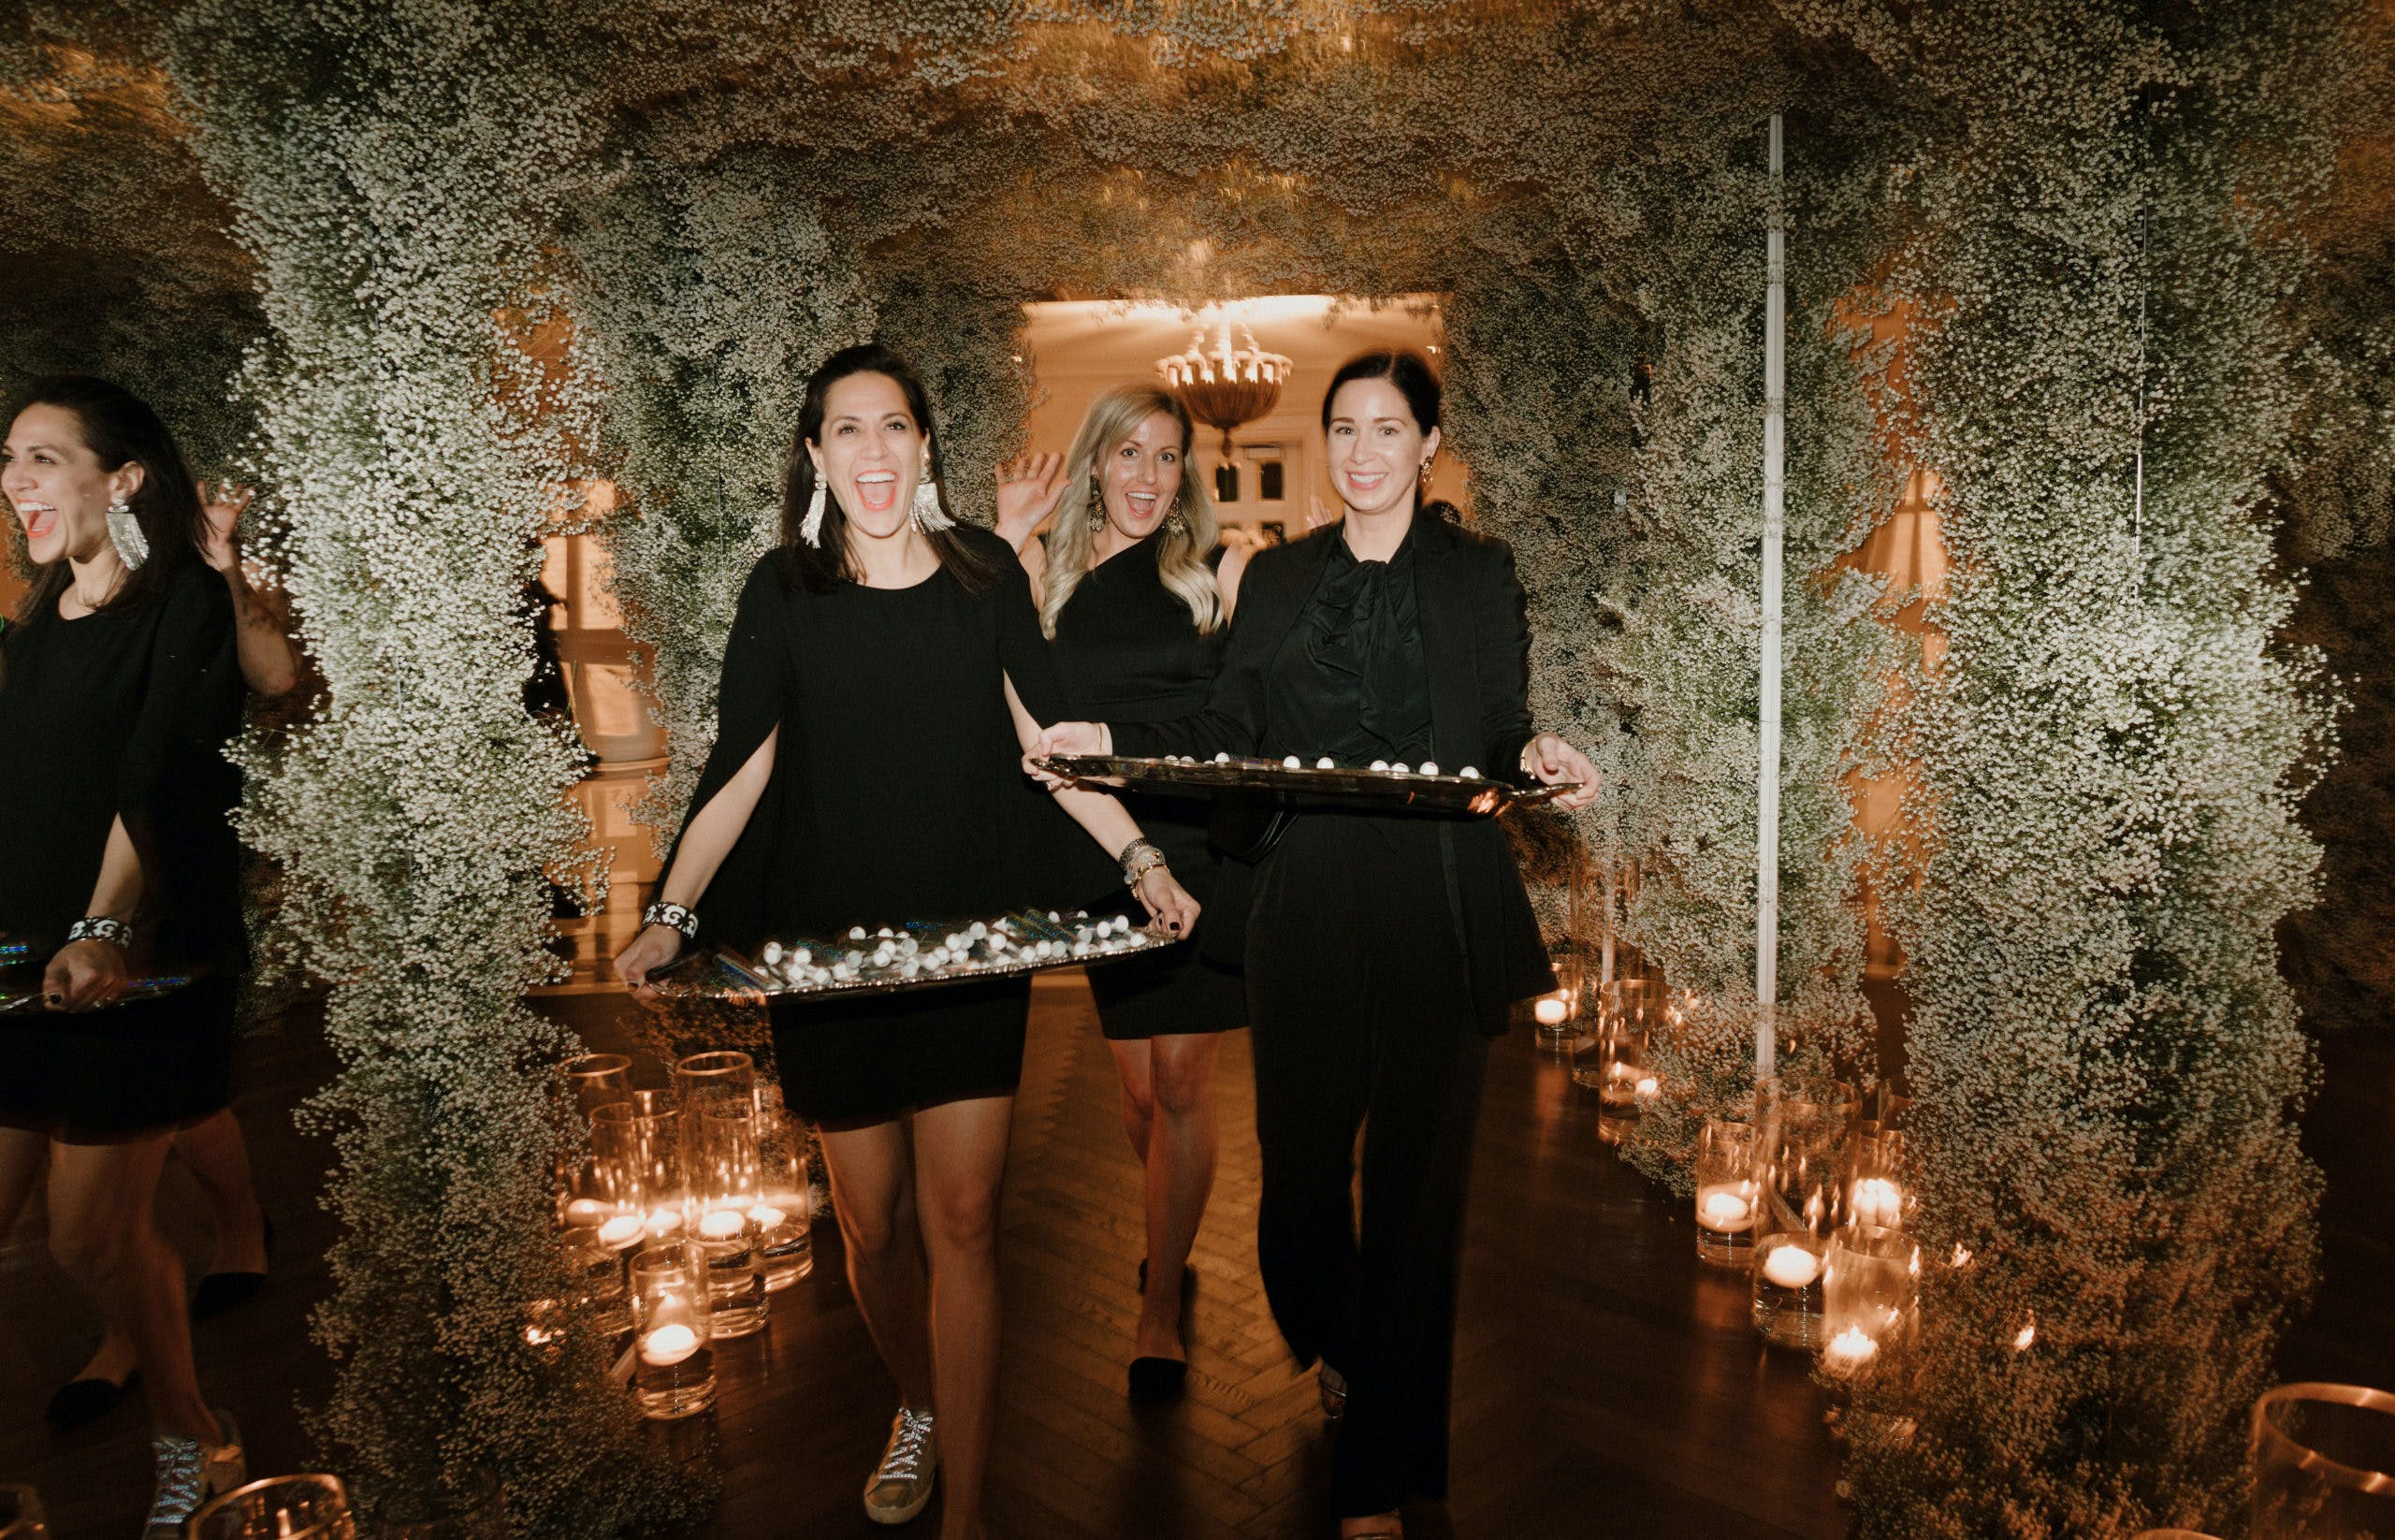 Three Wedding Staff Servers Smile Underneath Wedding Canopy Covered in Baby's Breath